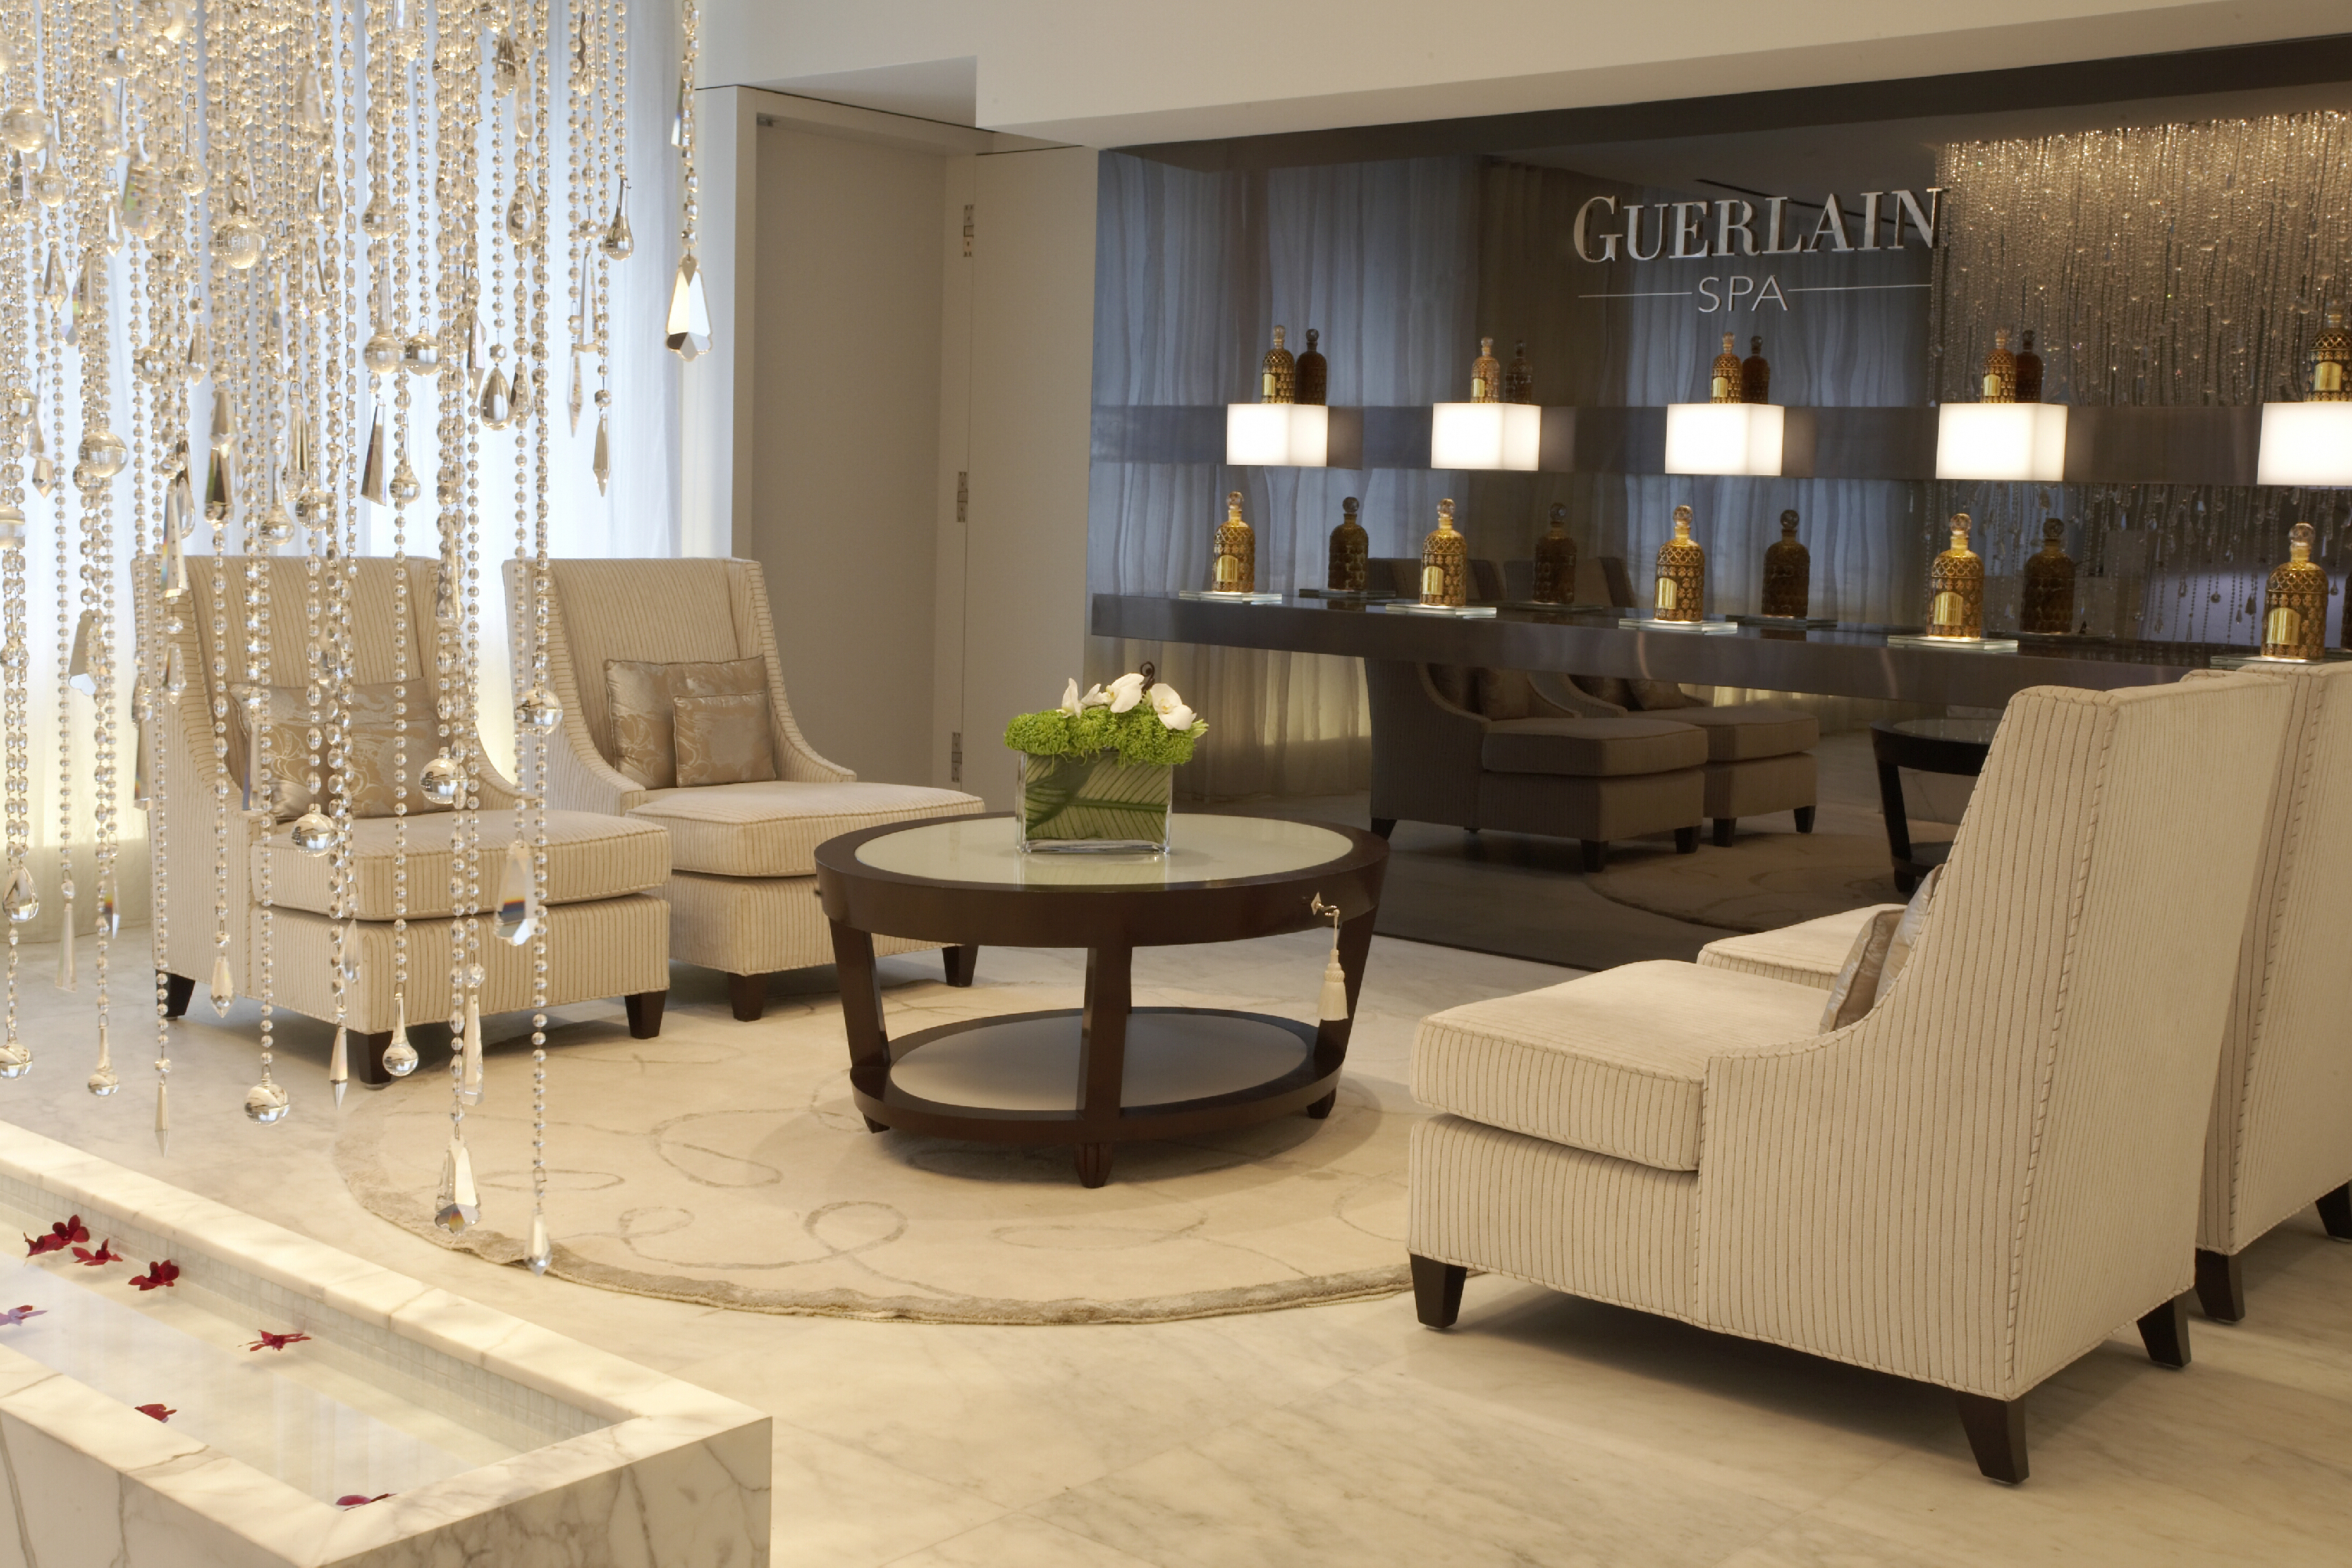 37% off a spa day with champagne at The Waldorf-Astoria Guerlain Spa